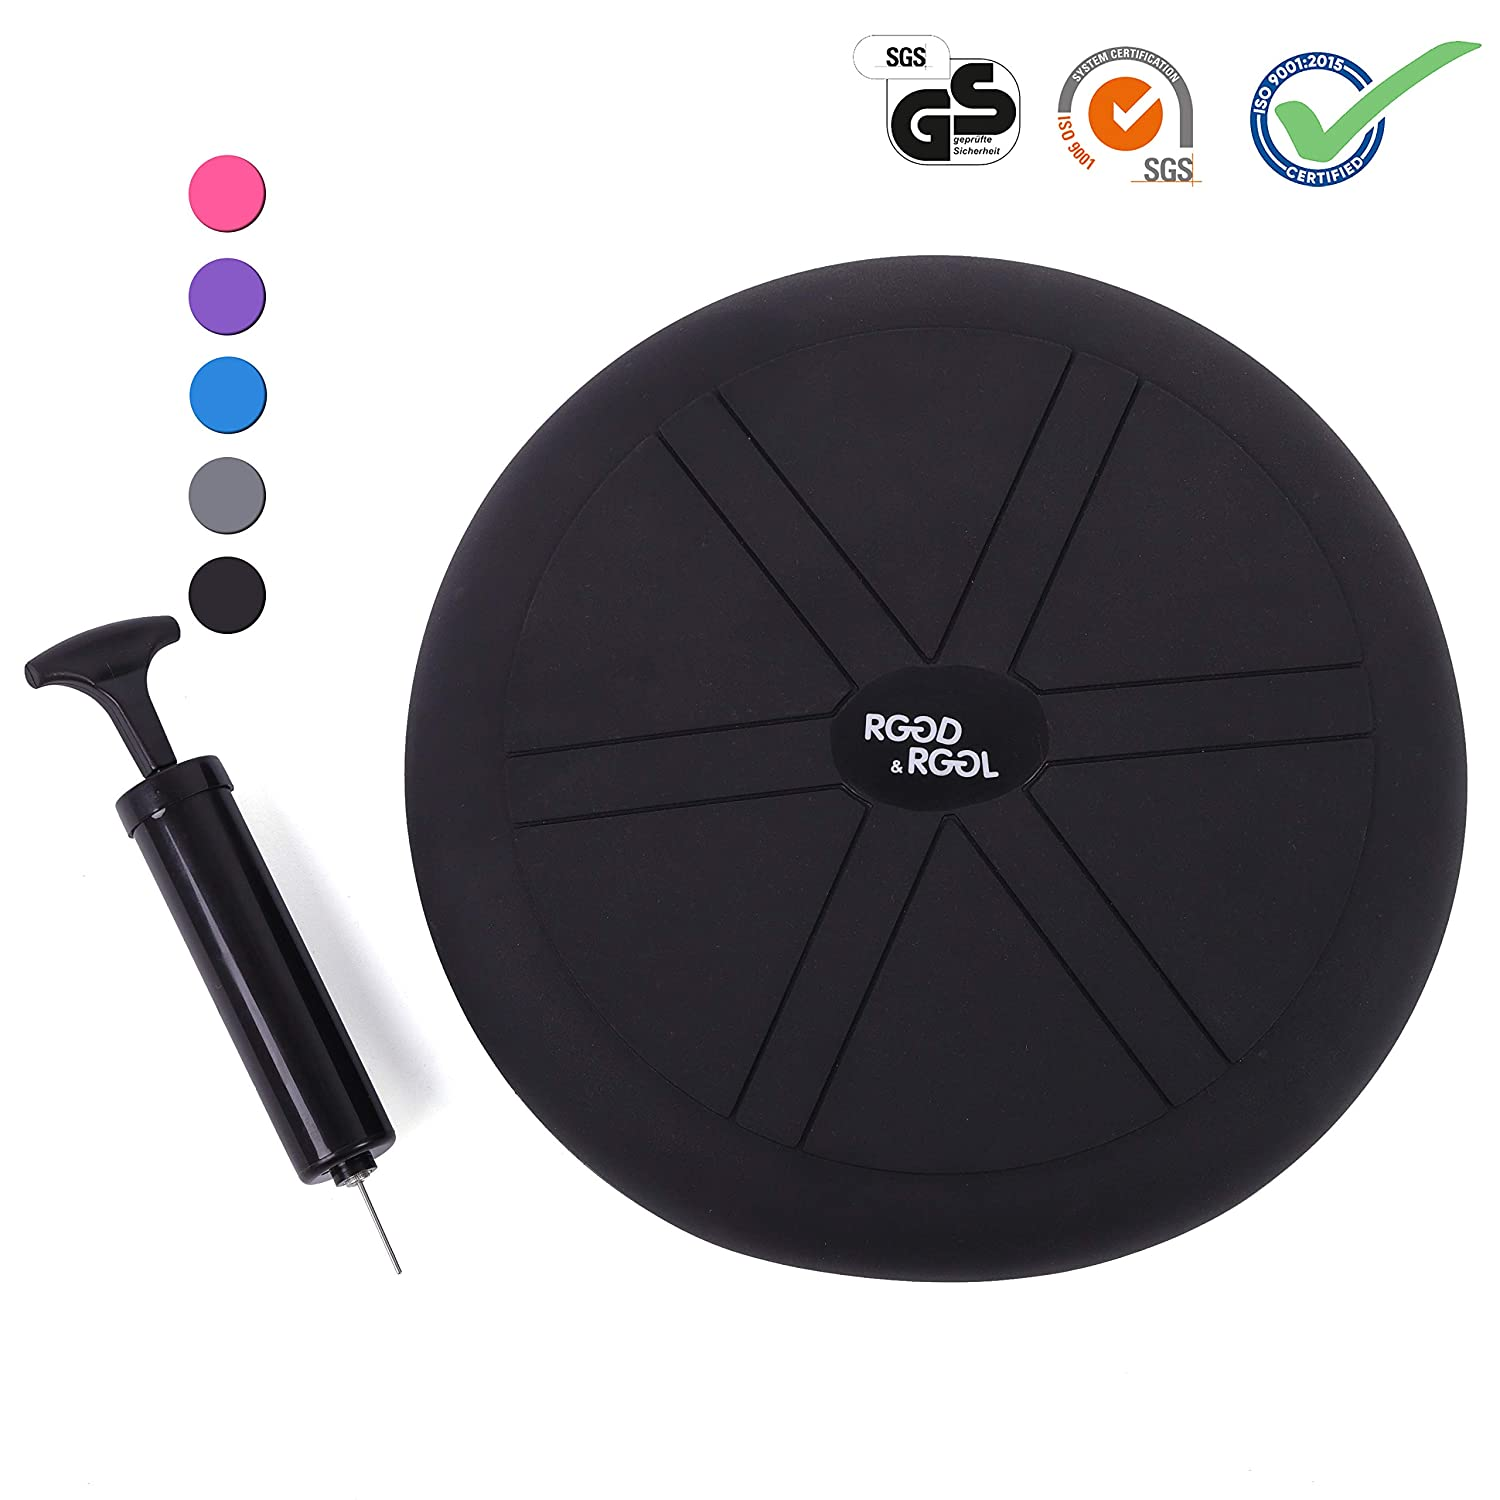 RGGD RGGL Wobble Cushion for Workout and Therapy,Support 442 lbs, 13 14inch Extra Thick Balance Disc with Pump,Kids Wiggle Seat,Sensory Cushion for Classroom Office Home